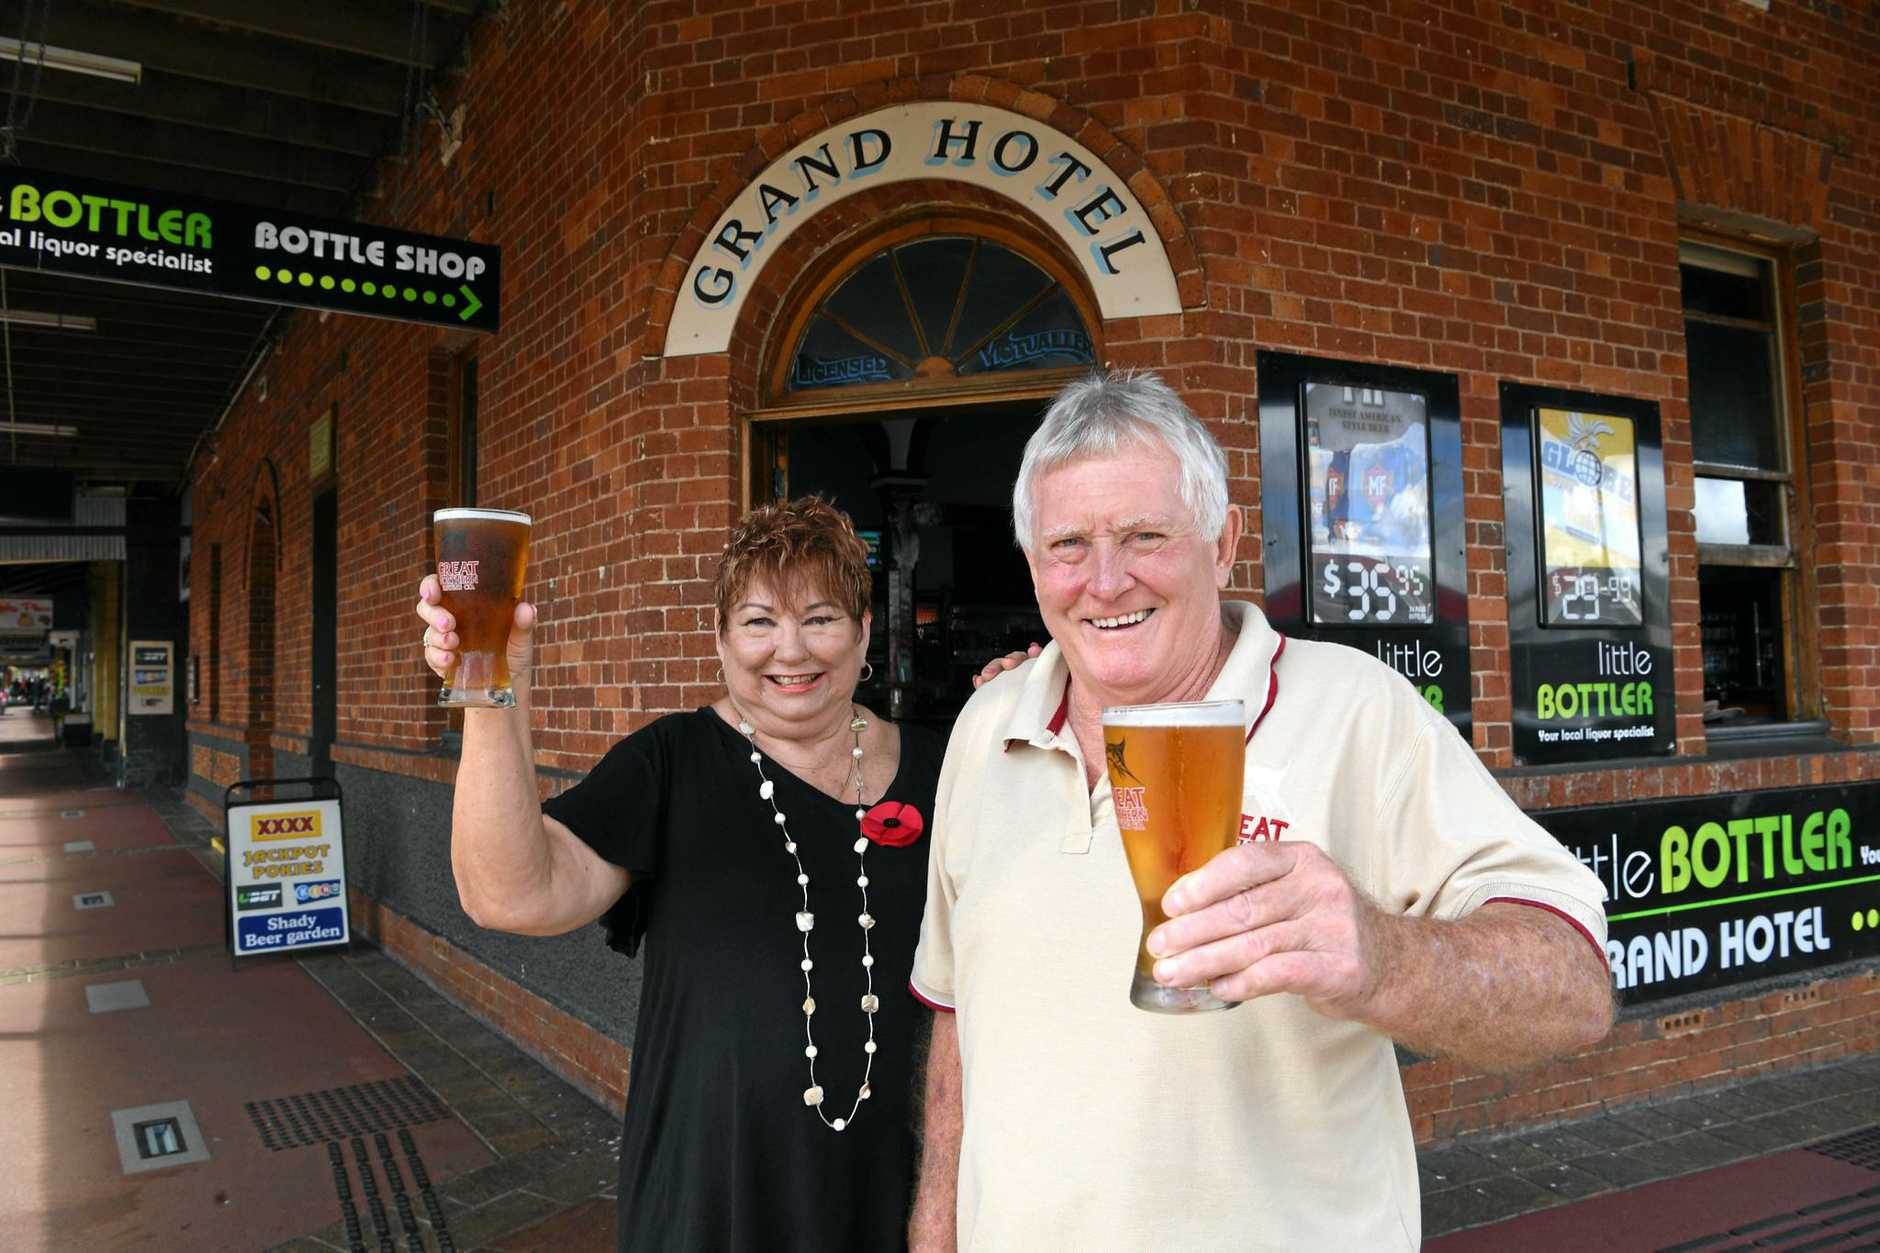 FREE BEER: Pam and Dennis Corliss from the Grand Hotel in Childers will be offering a free schooner of beer to ex-servicemen and women and currently enlisted members of the Australian armed forces entering their premises and who are wearing their medals on Anzac Day.